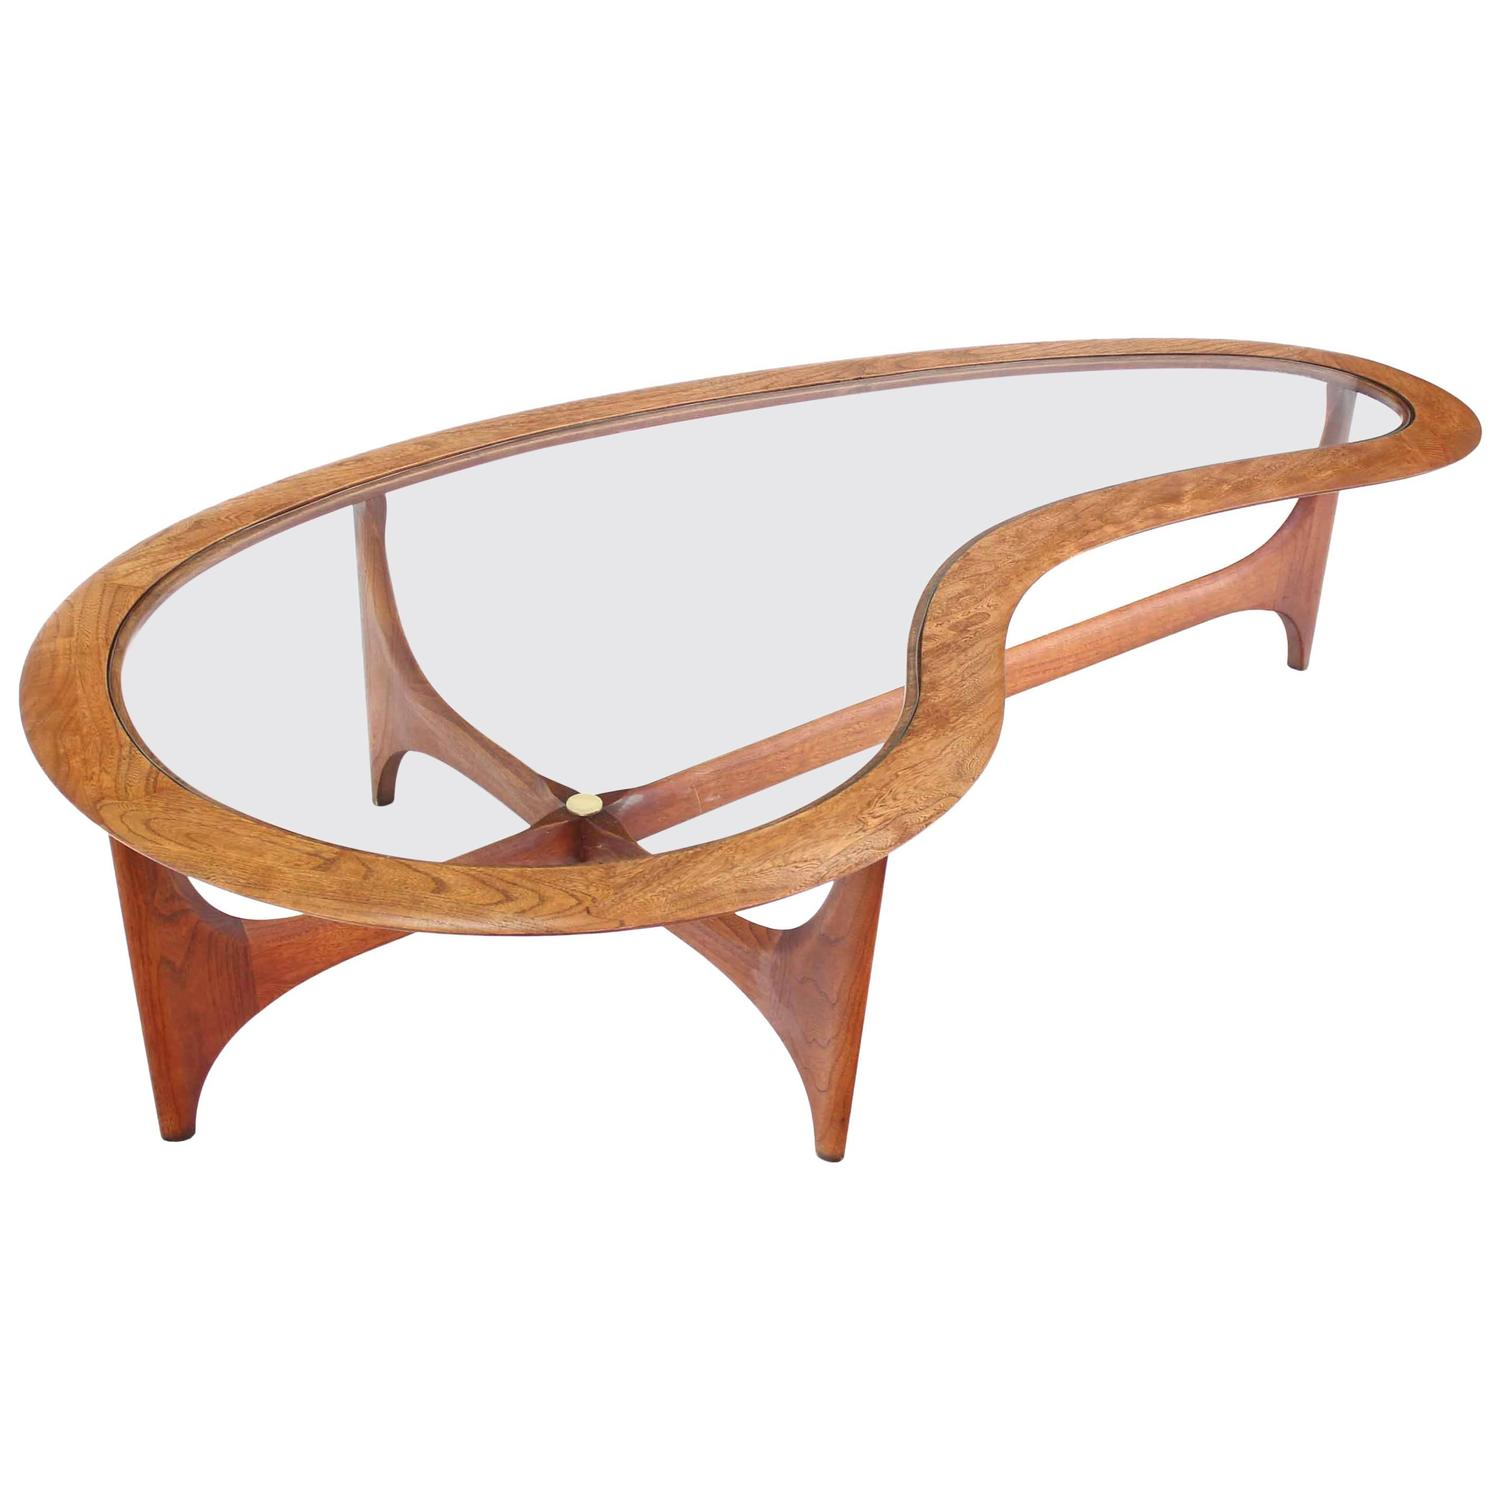 Danish Mid Century Modern Biomorphic Coffee Table For Sale At 1stdibs